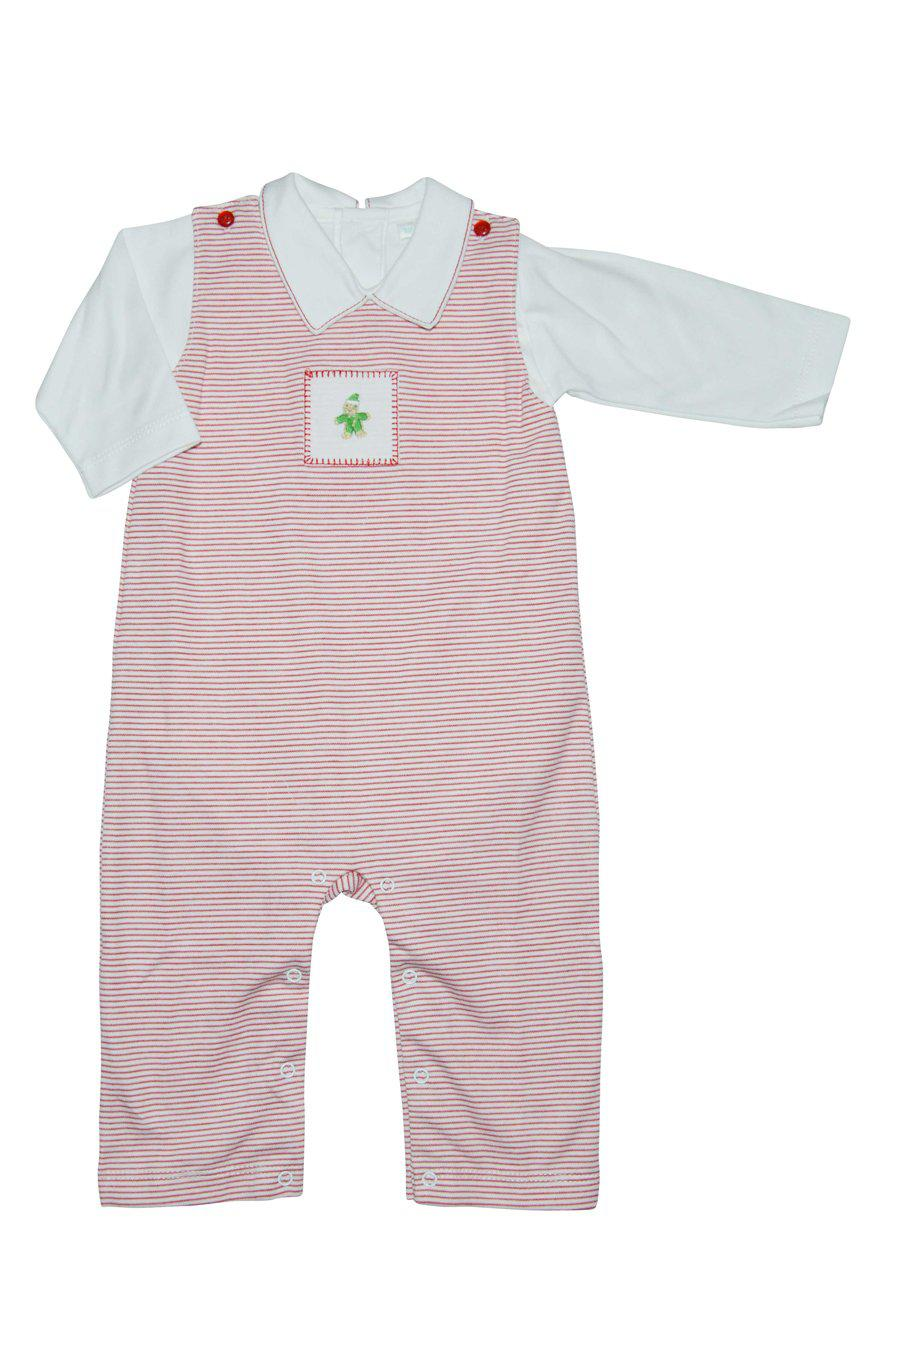 Gingerbread Boy's Pima Cotton Overall Set - Little Threads Inc. Children's Clothing